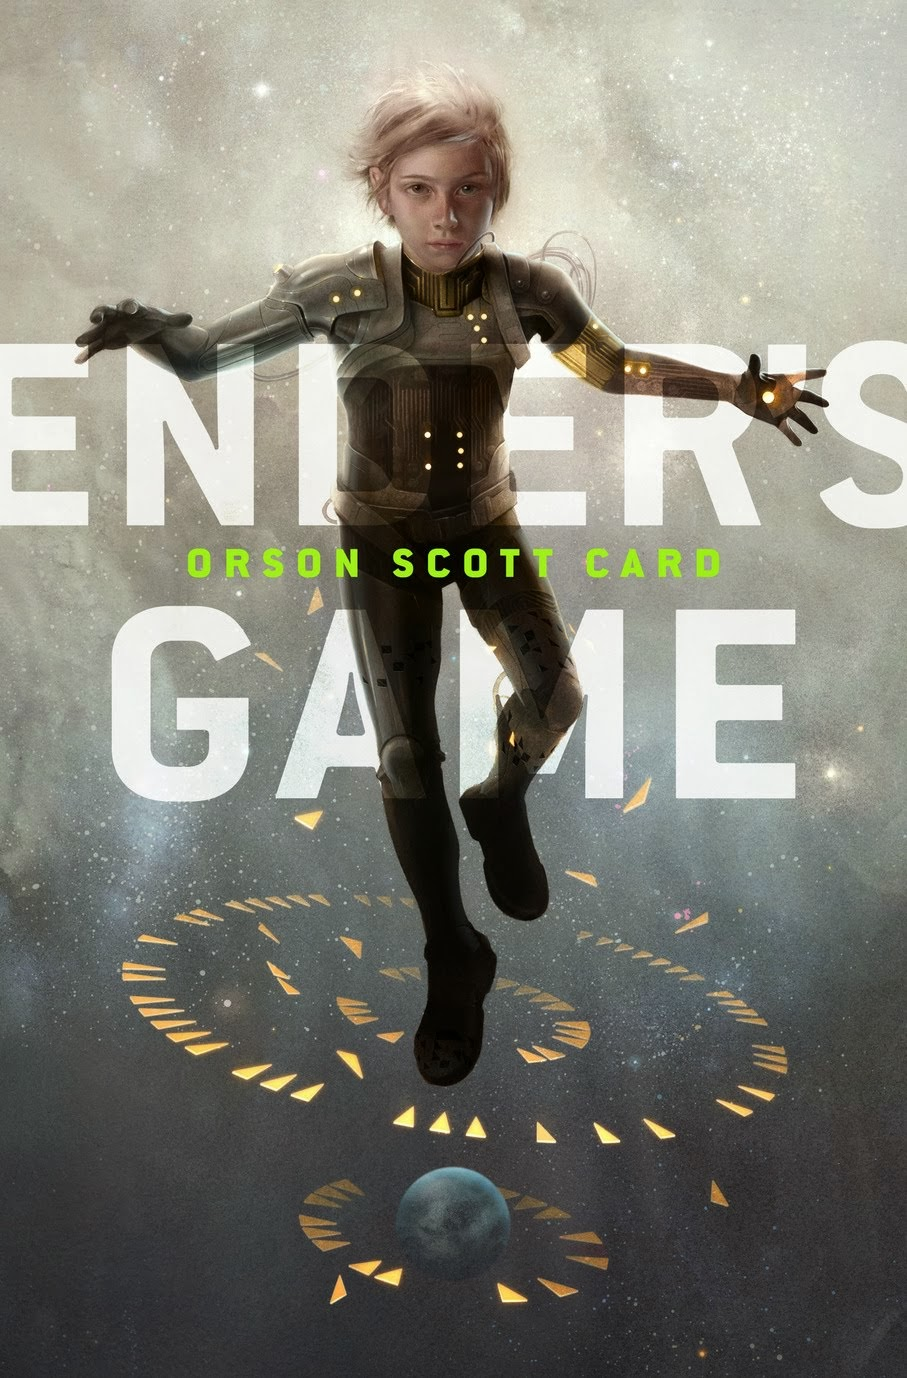 enders game book compared to movie The long-awaited movie adaptation of ender's game is out this week, bringing the popular sci-fi tale to the big screen for the first time the movie, based on orson scott card's 1985 novel, follows ender wiggin (asa butterfield), a young, extremely intelligent boy who is recruited to attend b.